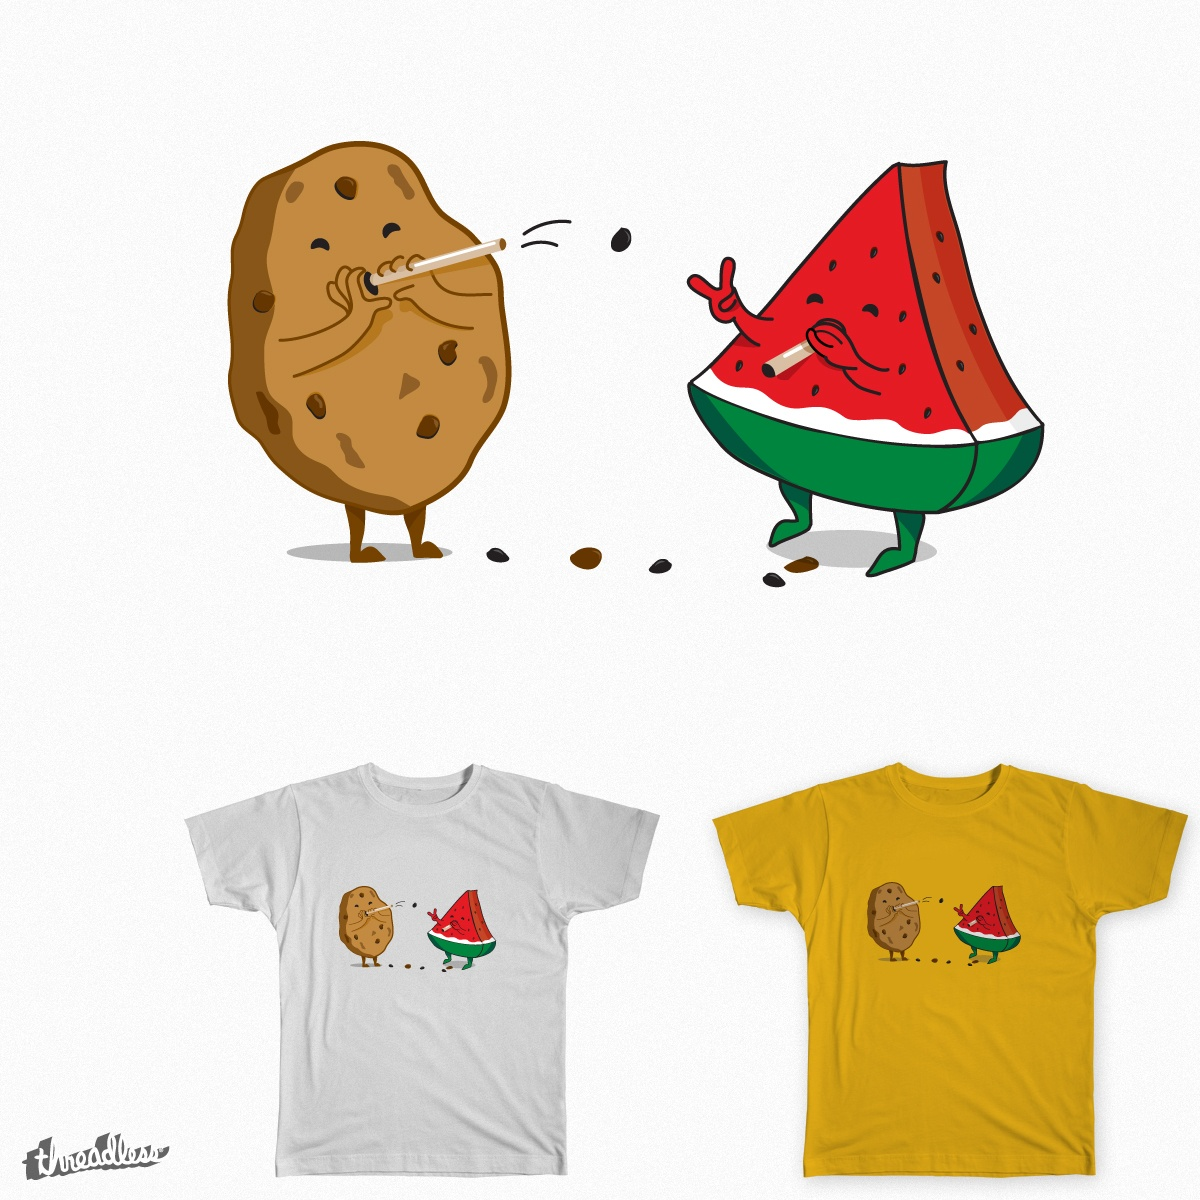 The truth behind, a cool t-shirt design